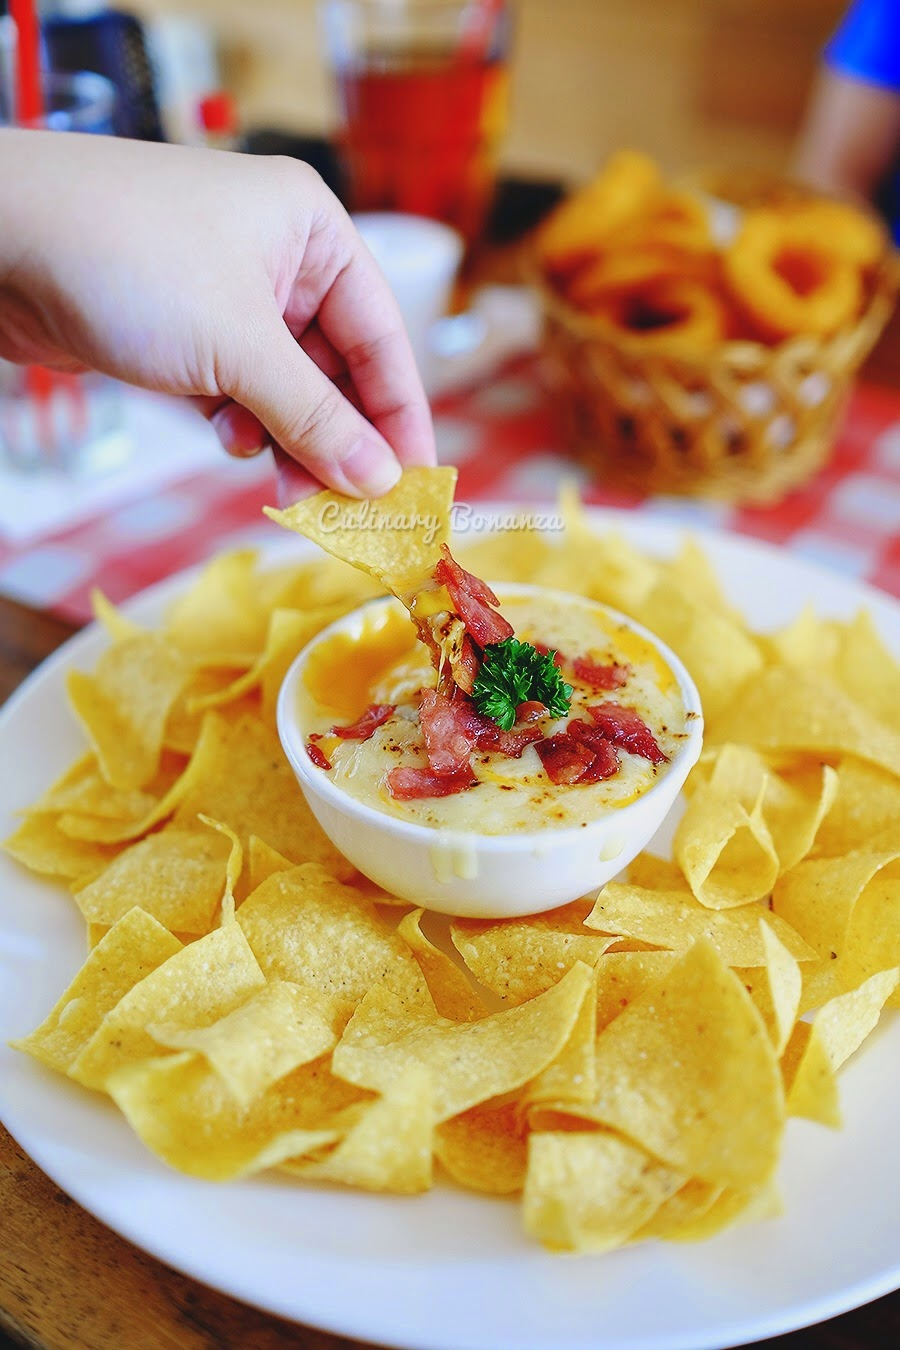 TCG Nachos, served with super rich Cheesy Burger Dip made with generous minced meat, bacon, salsa, mozzarella cheese, cheddar cheese & jalapeno